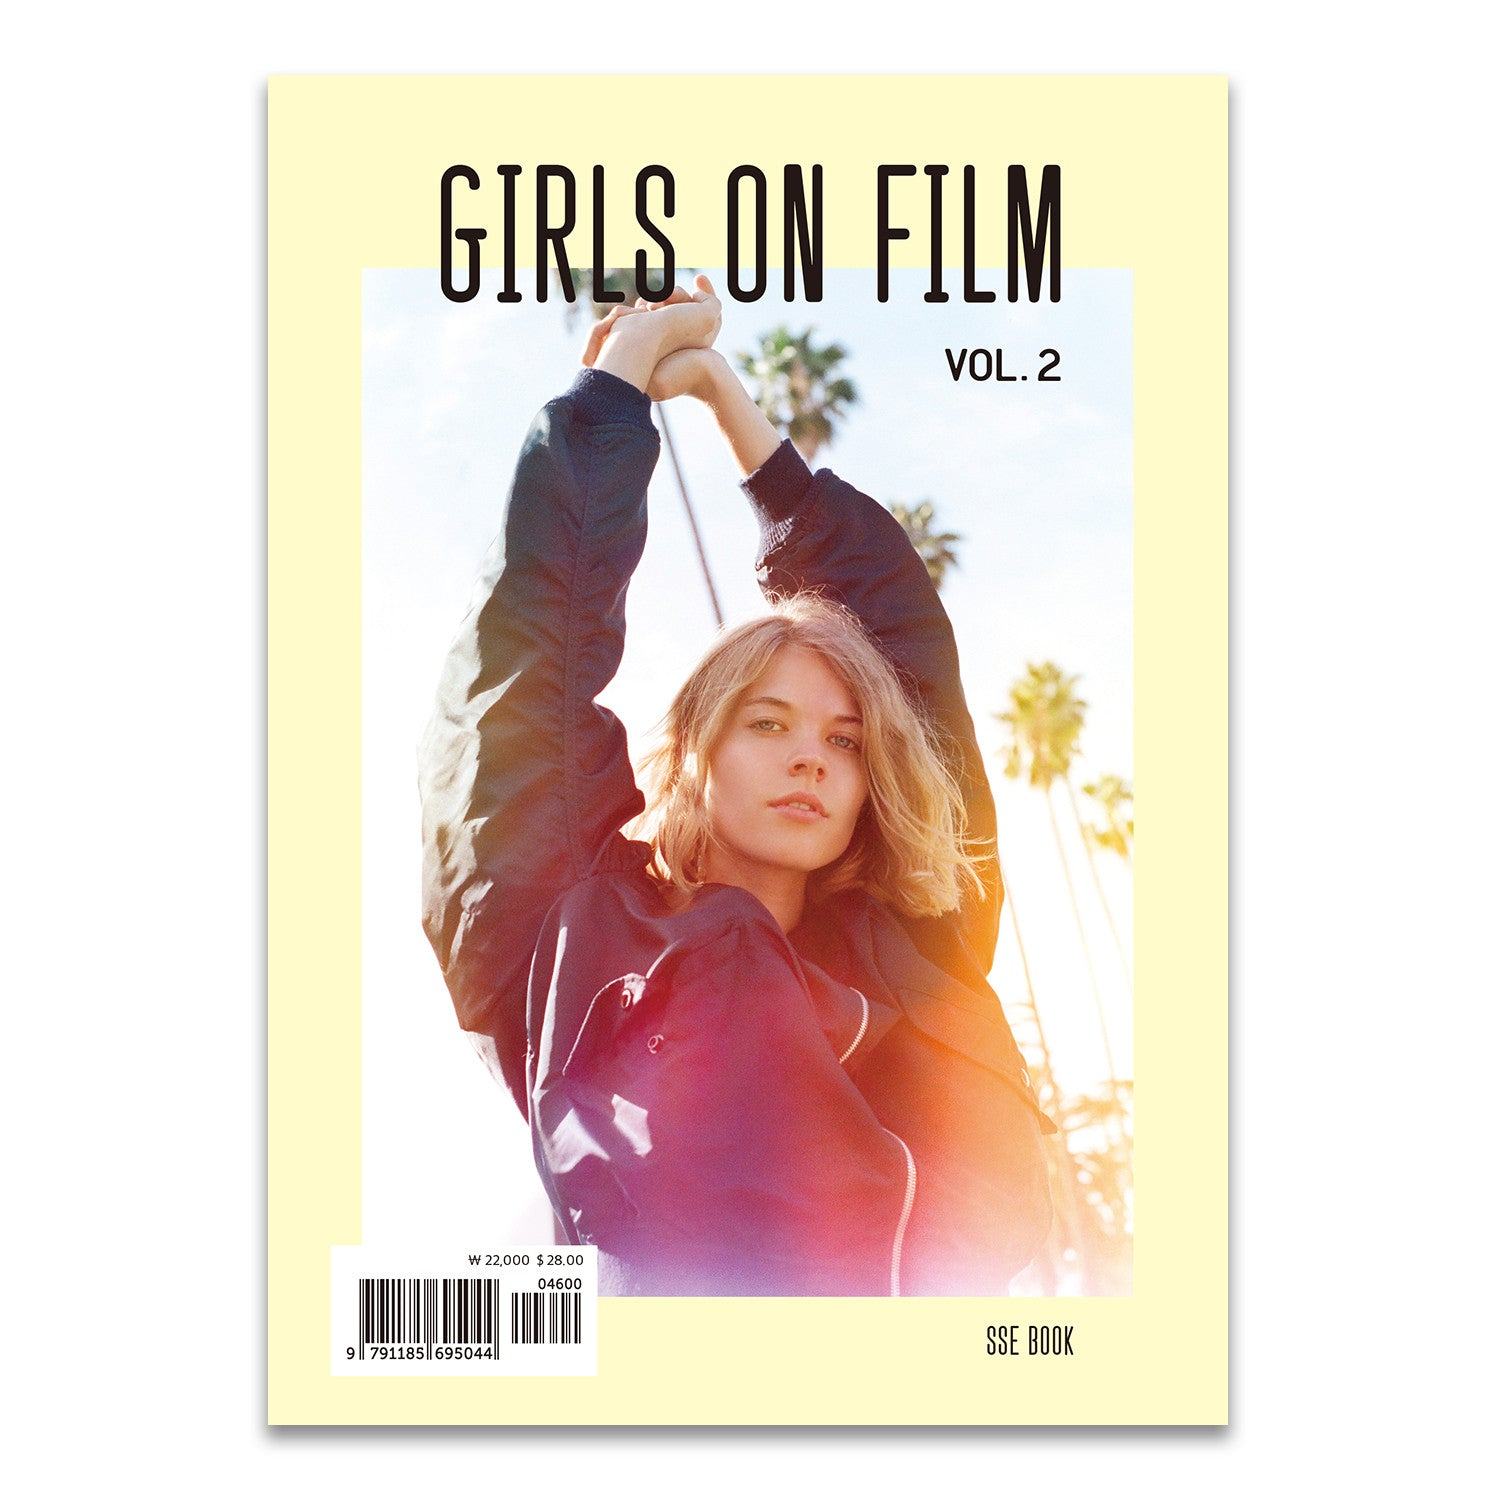 Girls on Film Vol.2